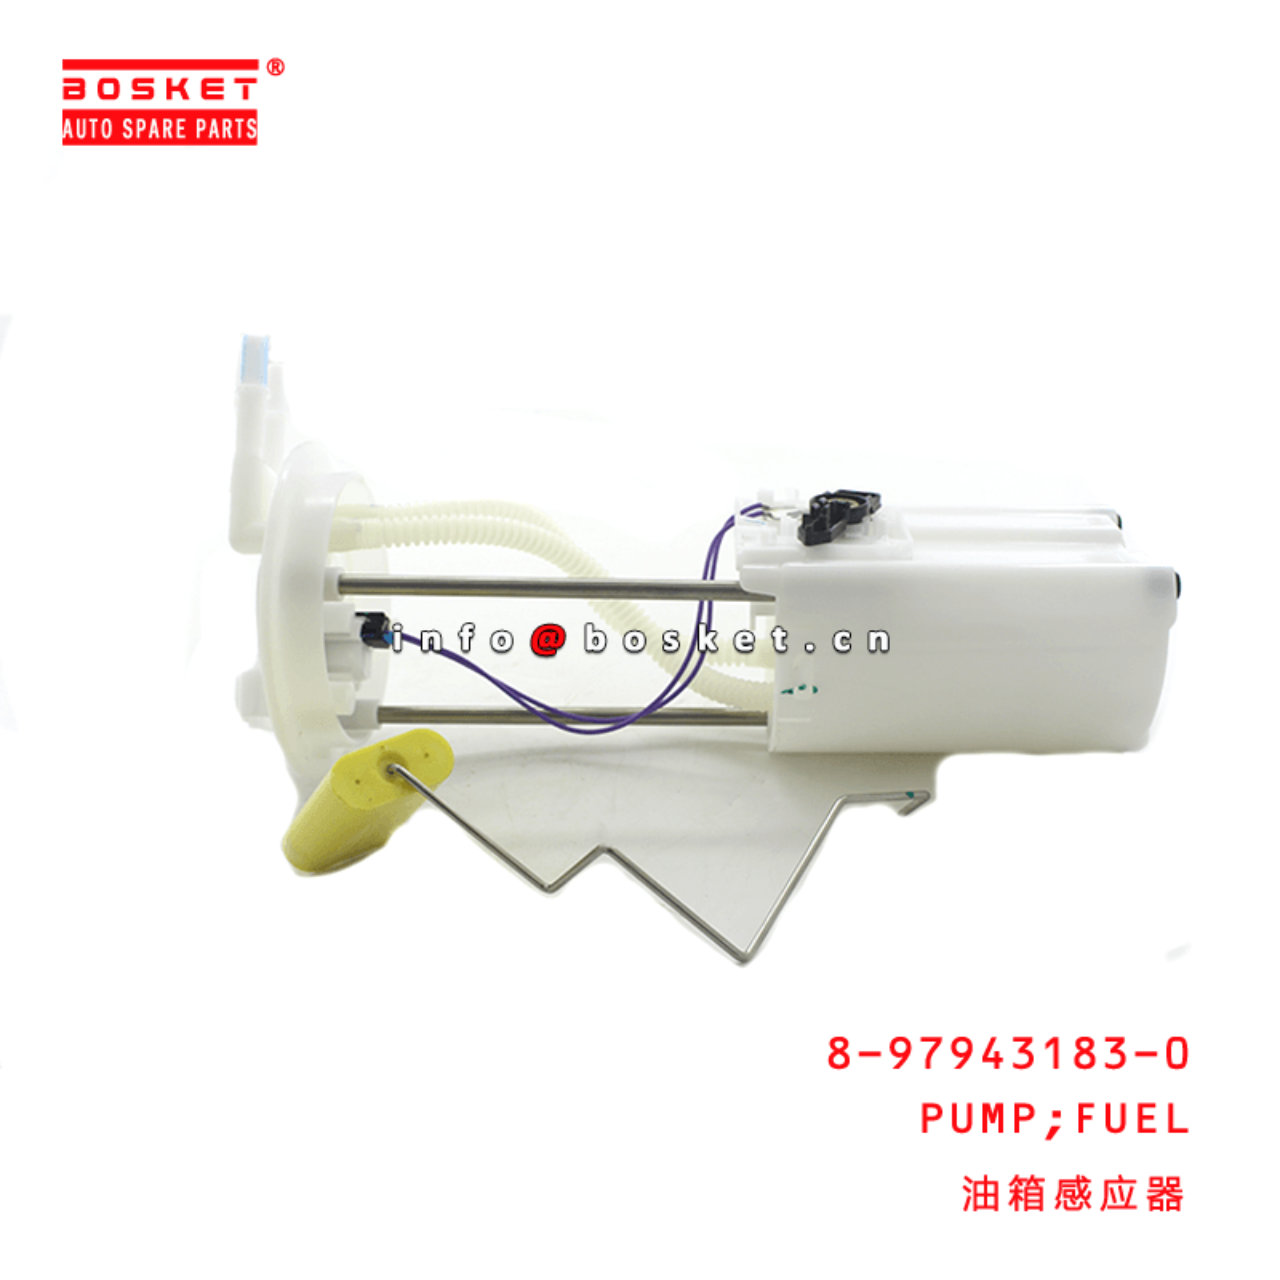 8-97943183-0 Fuel Pump 8979431830 Suitable for ISUZU TFR 4JA1 4JA1T